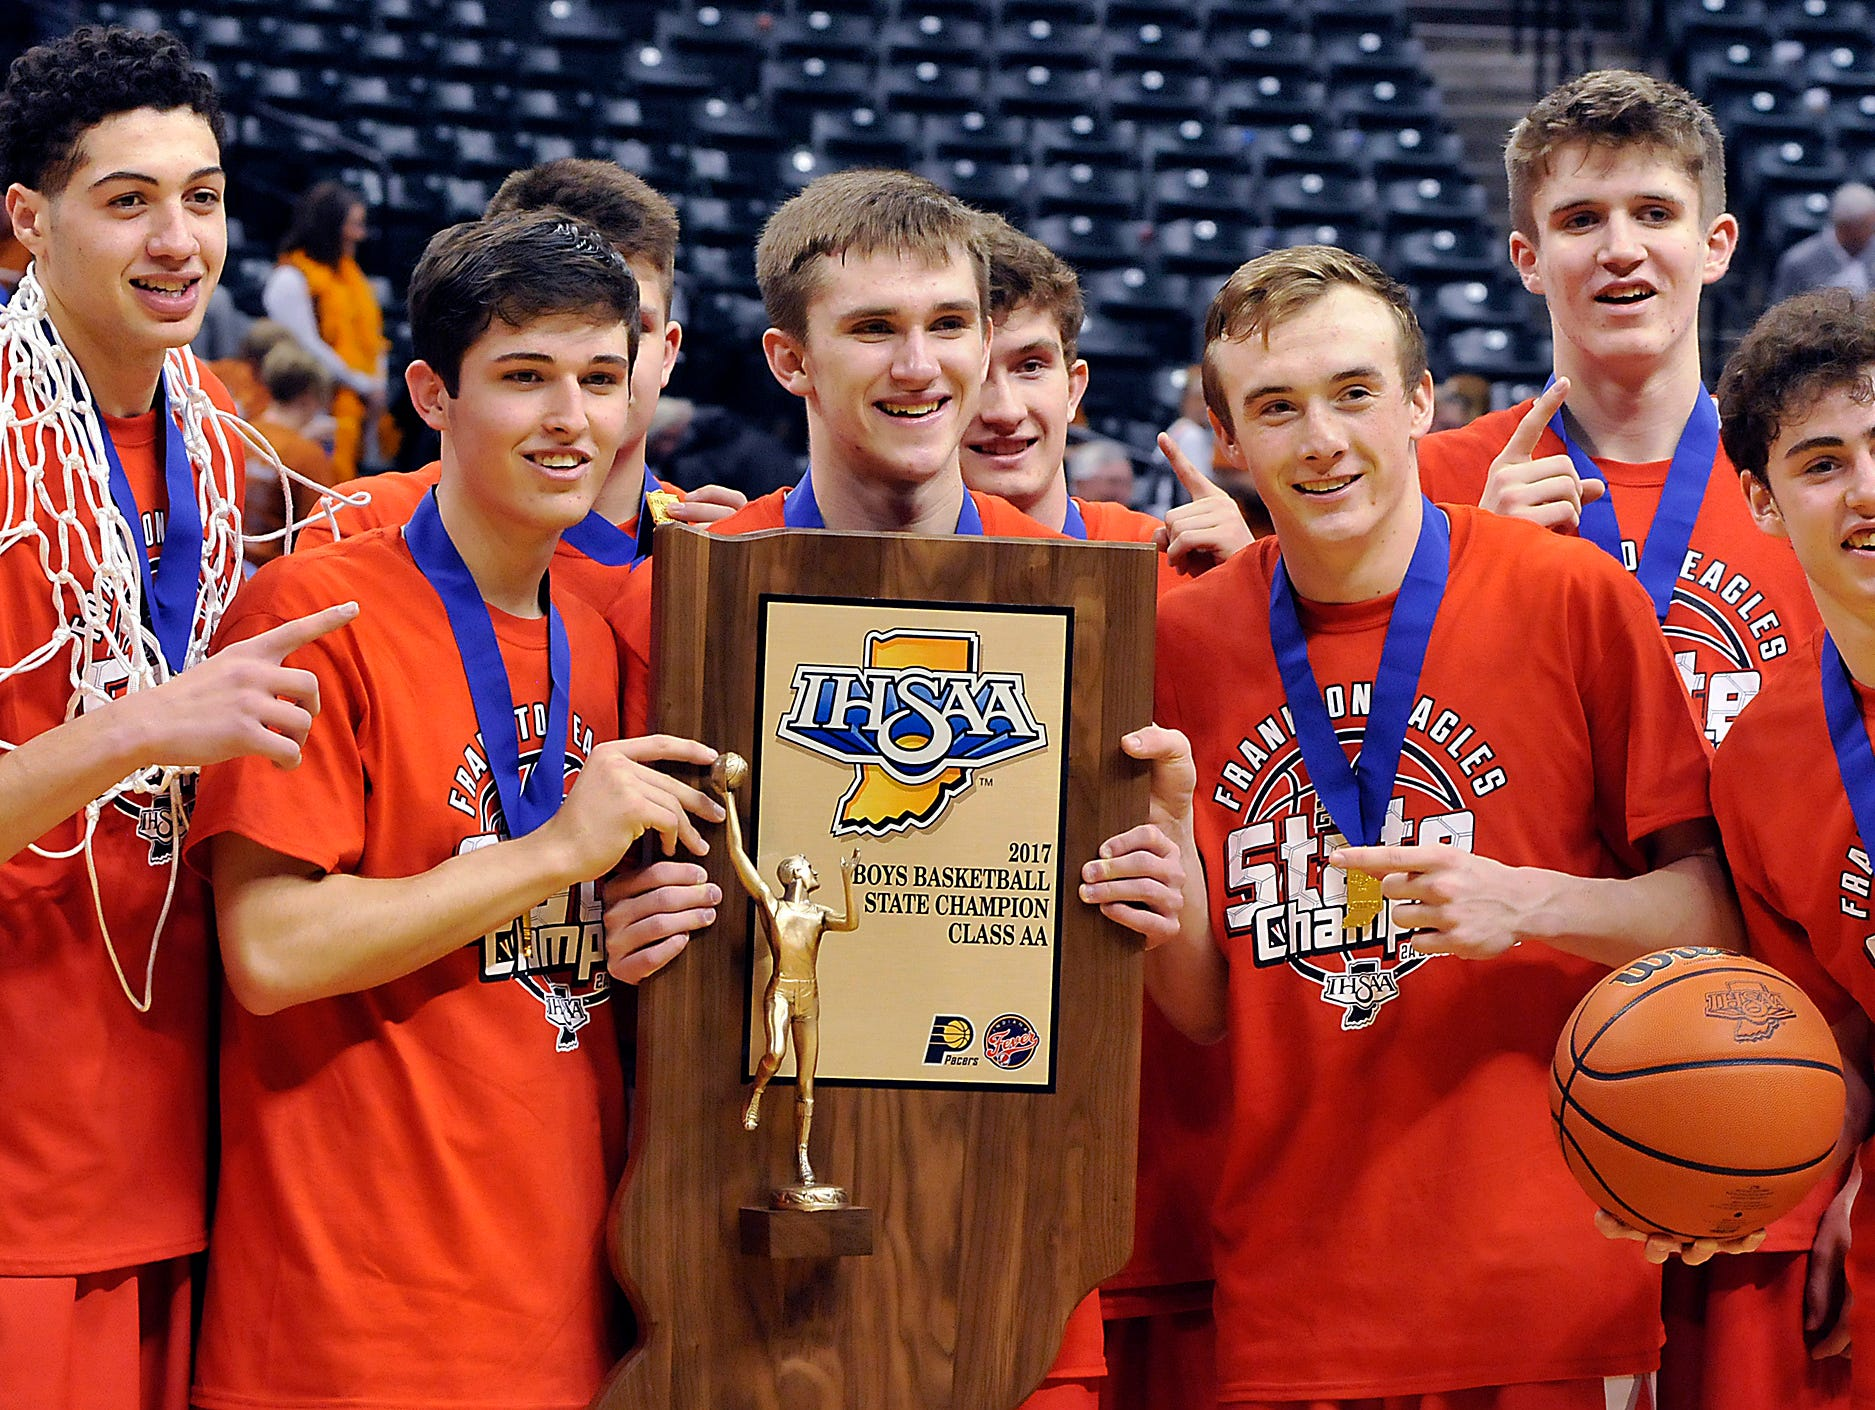 Frankton players show off their victory hardware after defeating Crawford County in the IHSAA boys' Class 2A state basketball final Saturday, March 25, 2017, in Indianapolis. (John P. Cleary/The Herald-Bulletin via AP)